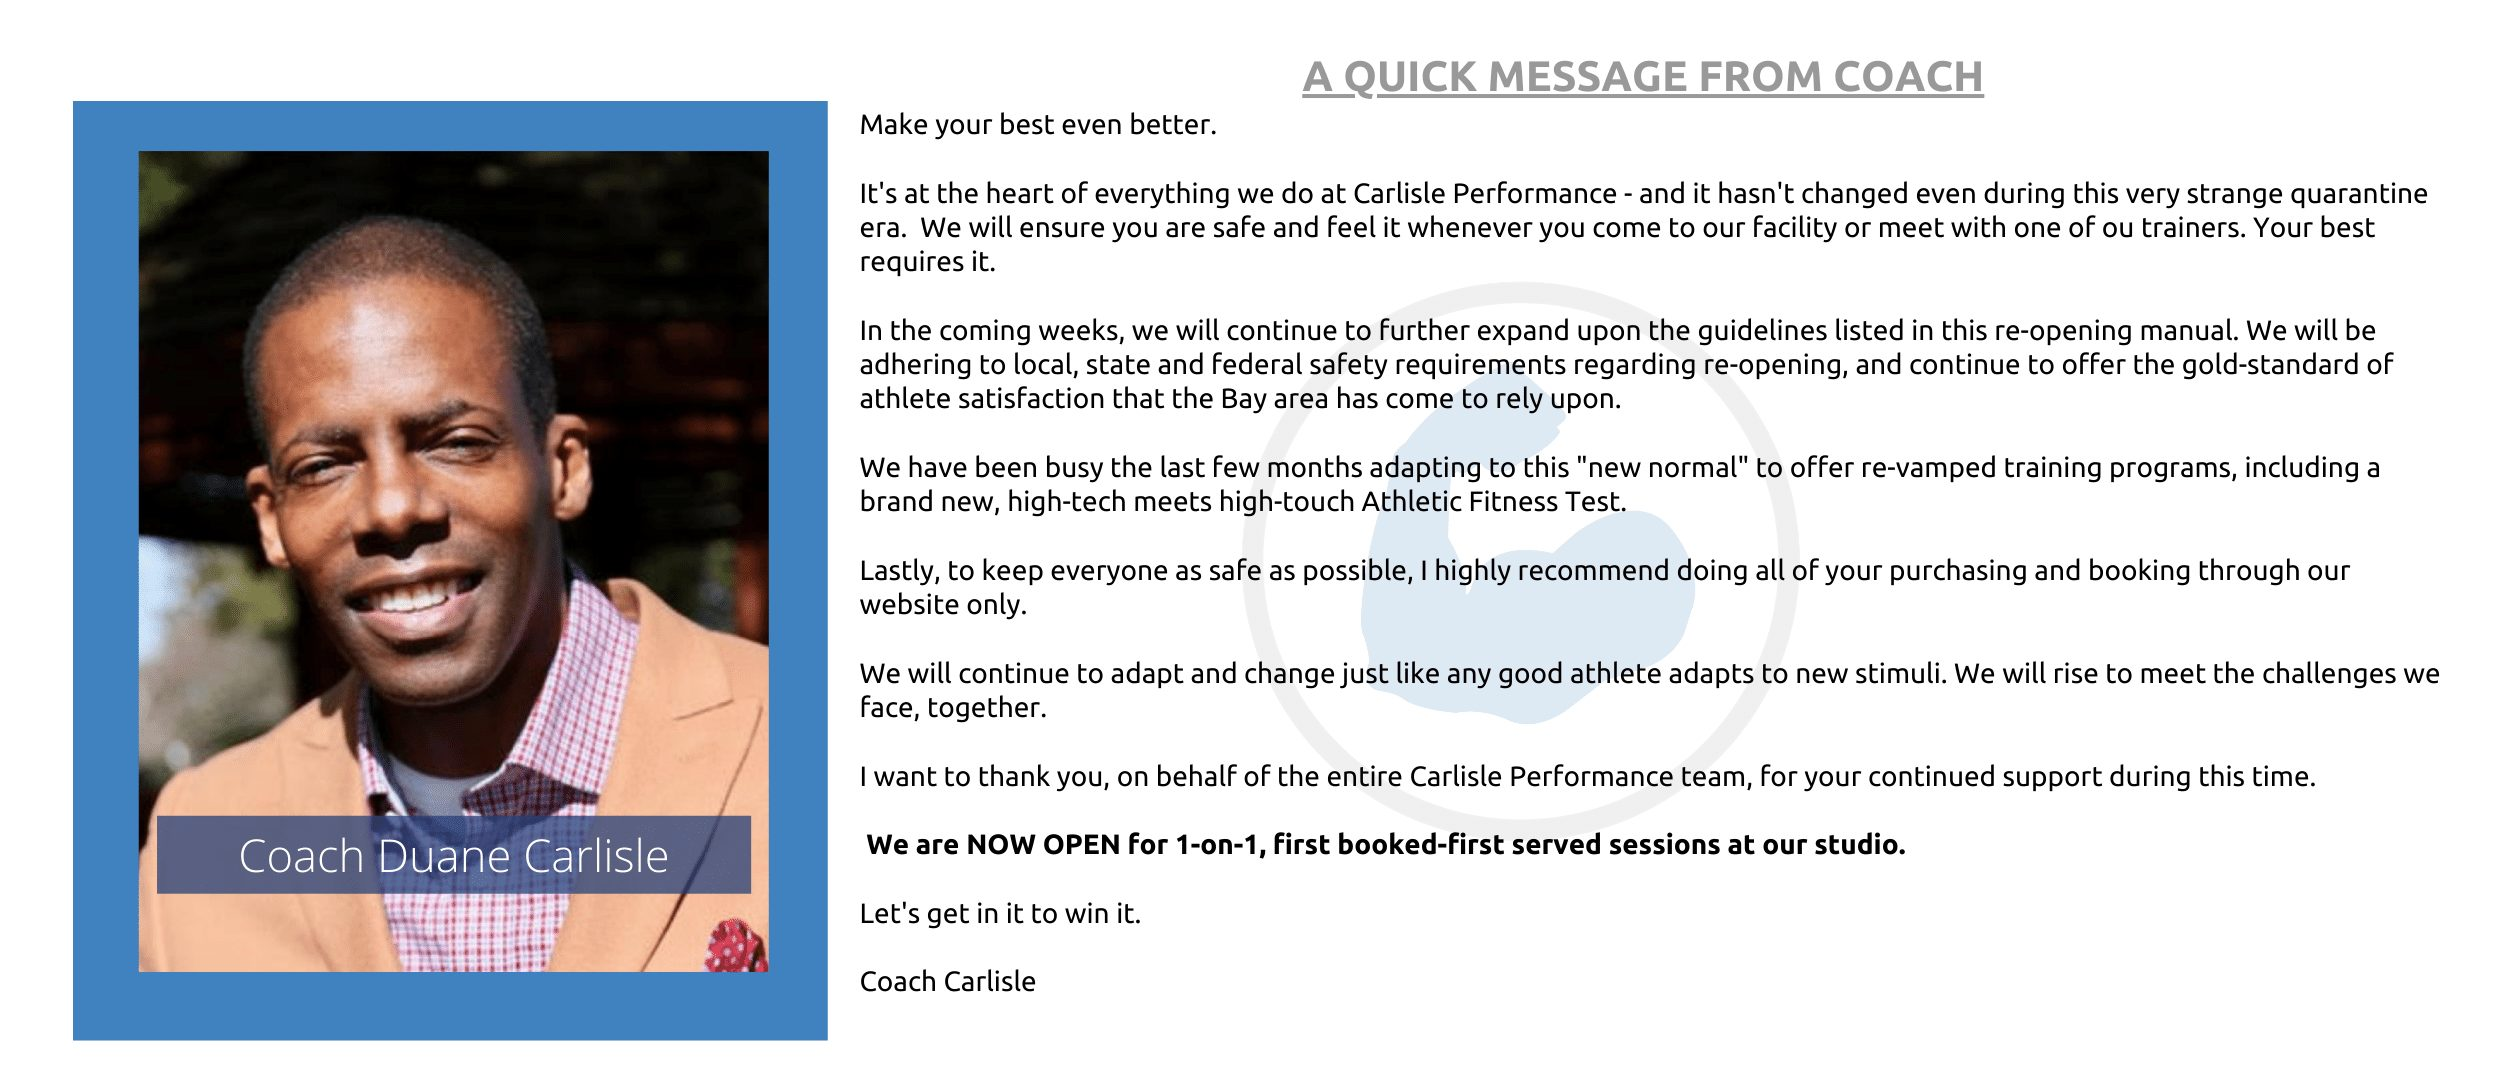 covid-19 fitness bay area opening manual carlisle performance message